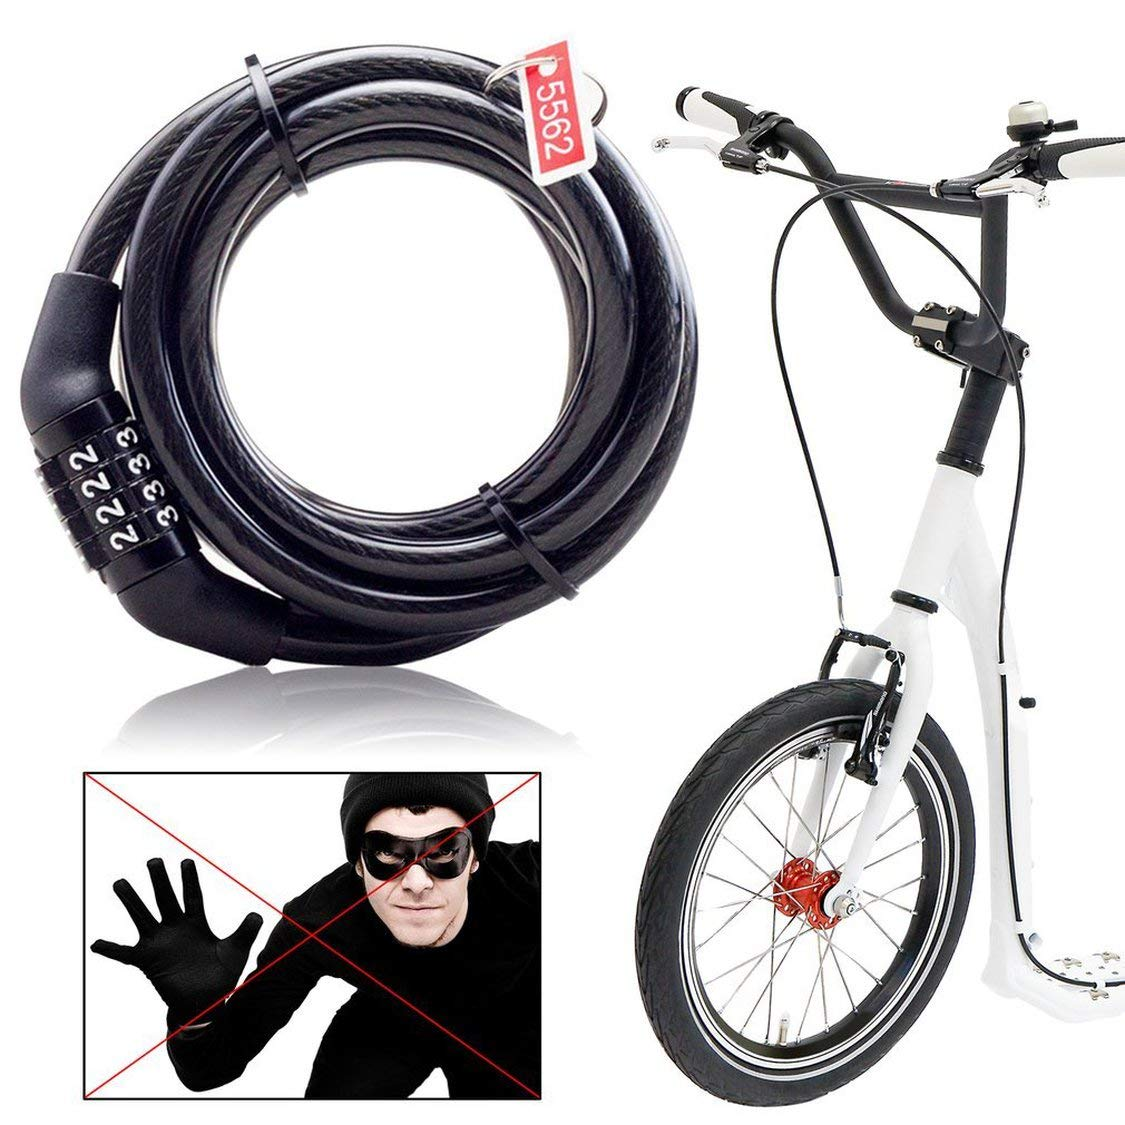 Fancysweety Multifunctional Bicycle Lock Anti-Theft Security Code Combination Lock Strengthen Steel Universal Mountain Bike Cable Lock